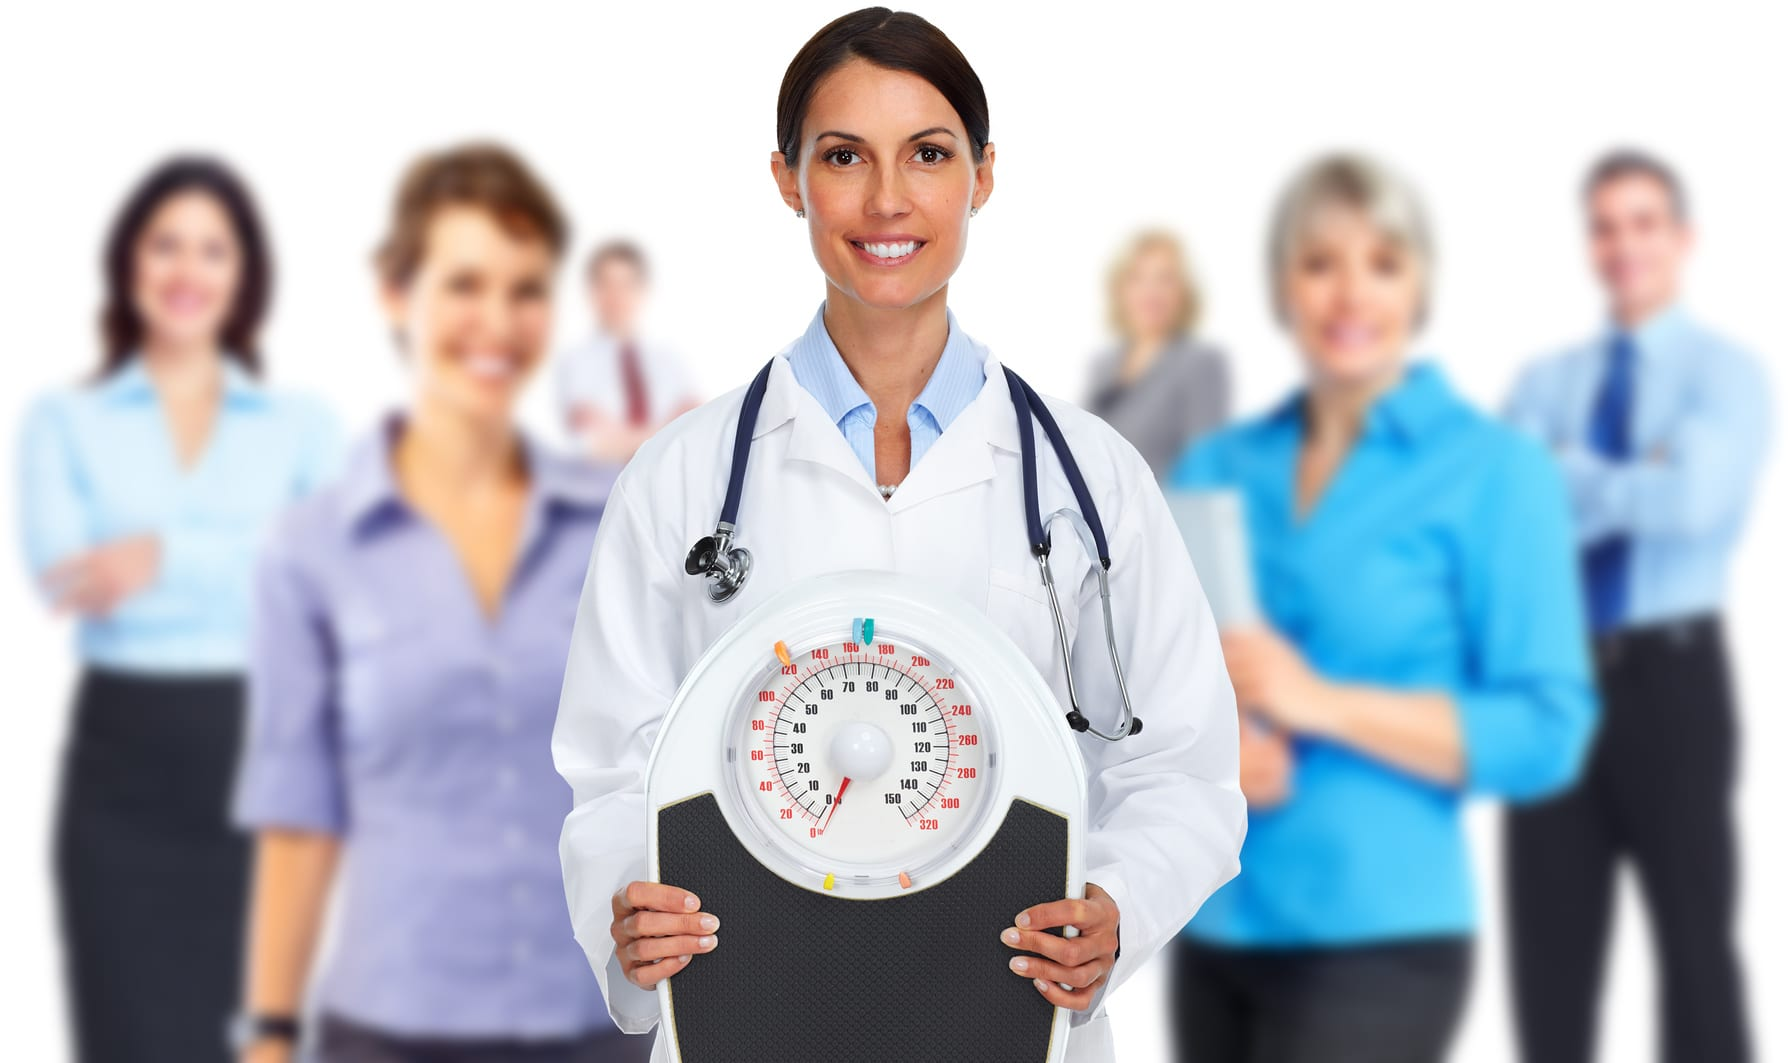 Medical doctor woman with scales. Diet and weight loss concept.